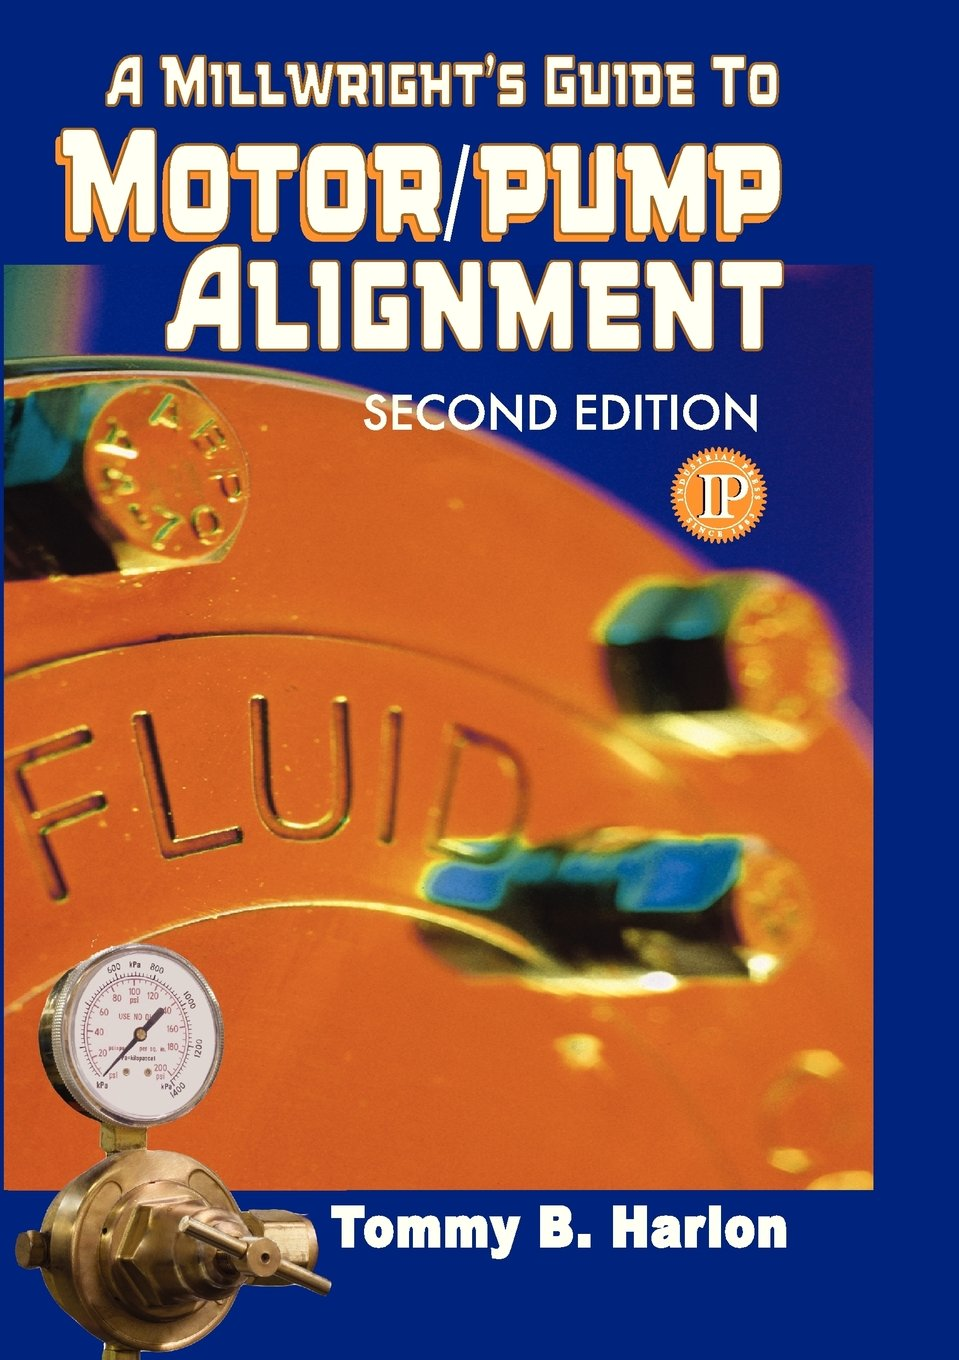 MILLWRIGHTS GUIDE TO MOTOR PUMP ALIGNMENT (POD): Tommy B. Harlon:  9780831102258: Books - Amazon.ca